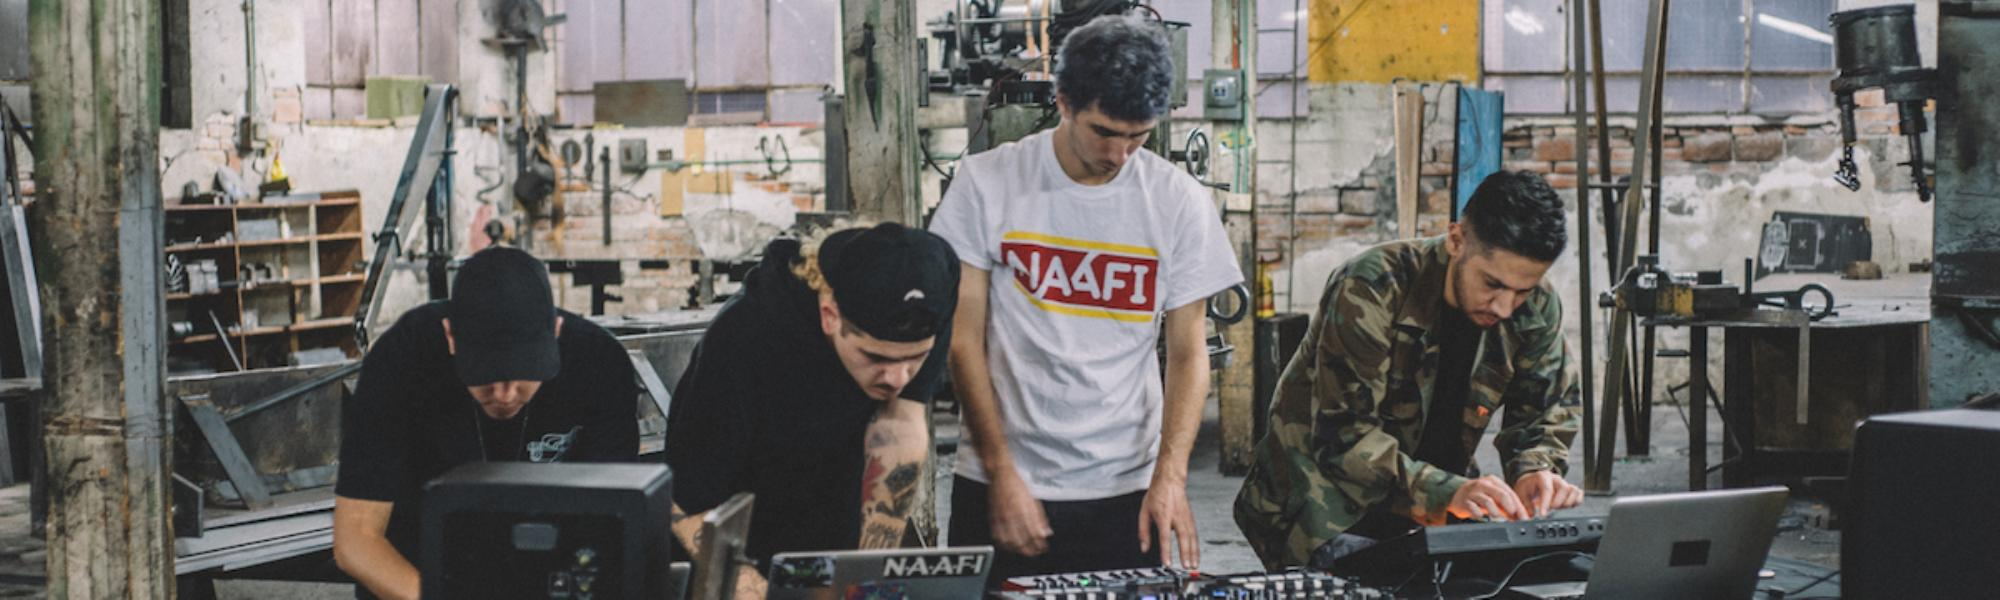 NAAFI Talk Embracing Latin Rhythms in the Face of Anglo-Dominated Club Culture in New Mini-Doc